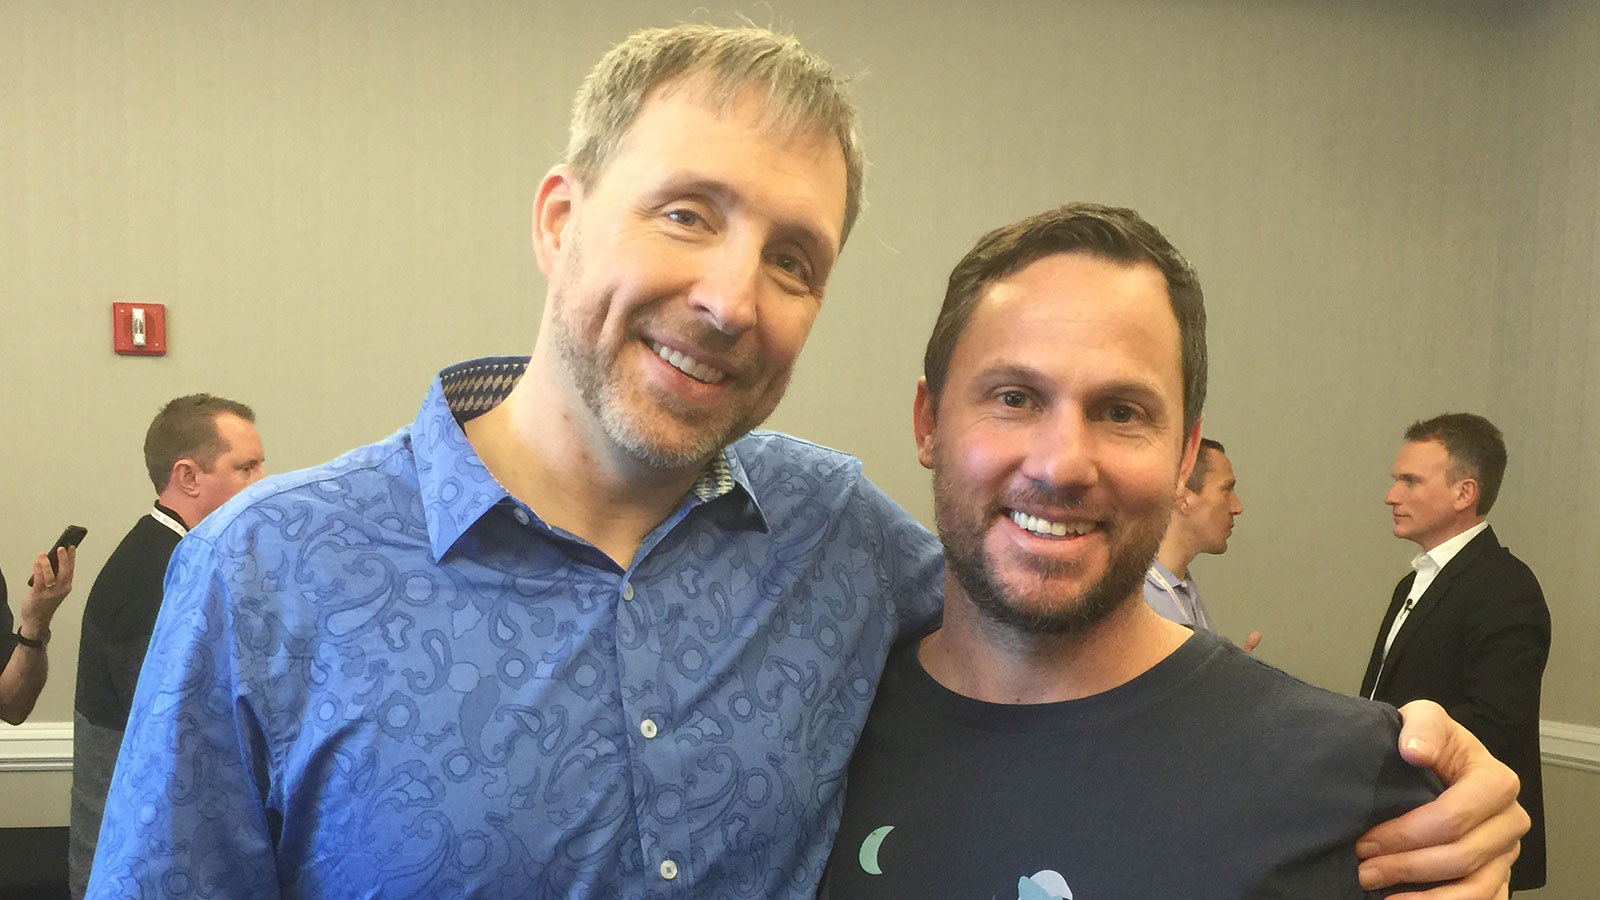 Regan and Dave Asprey at the Bulletproof Biohacking Conference